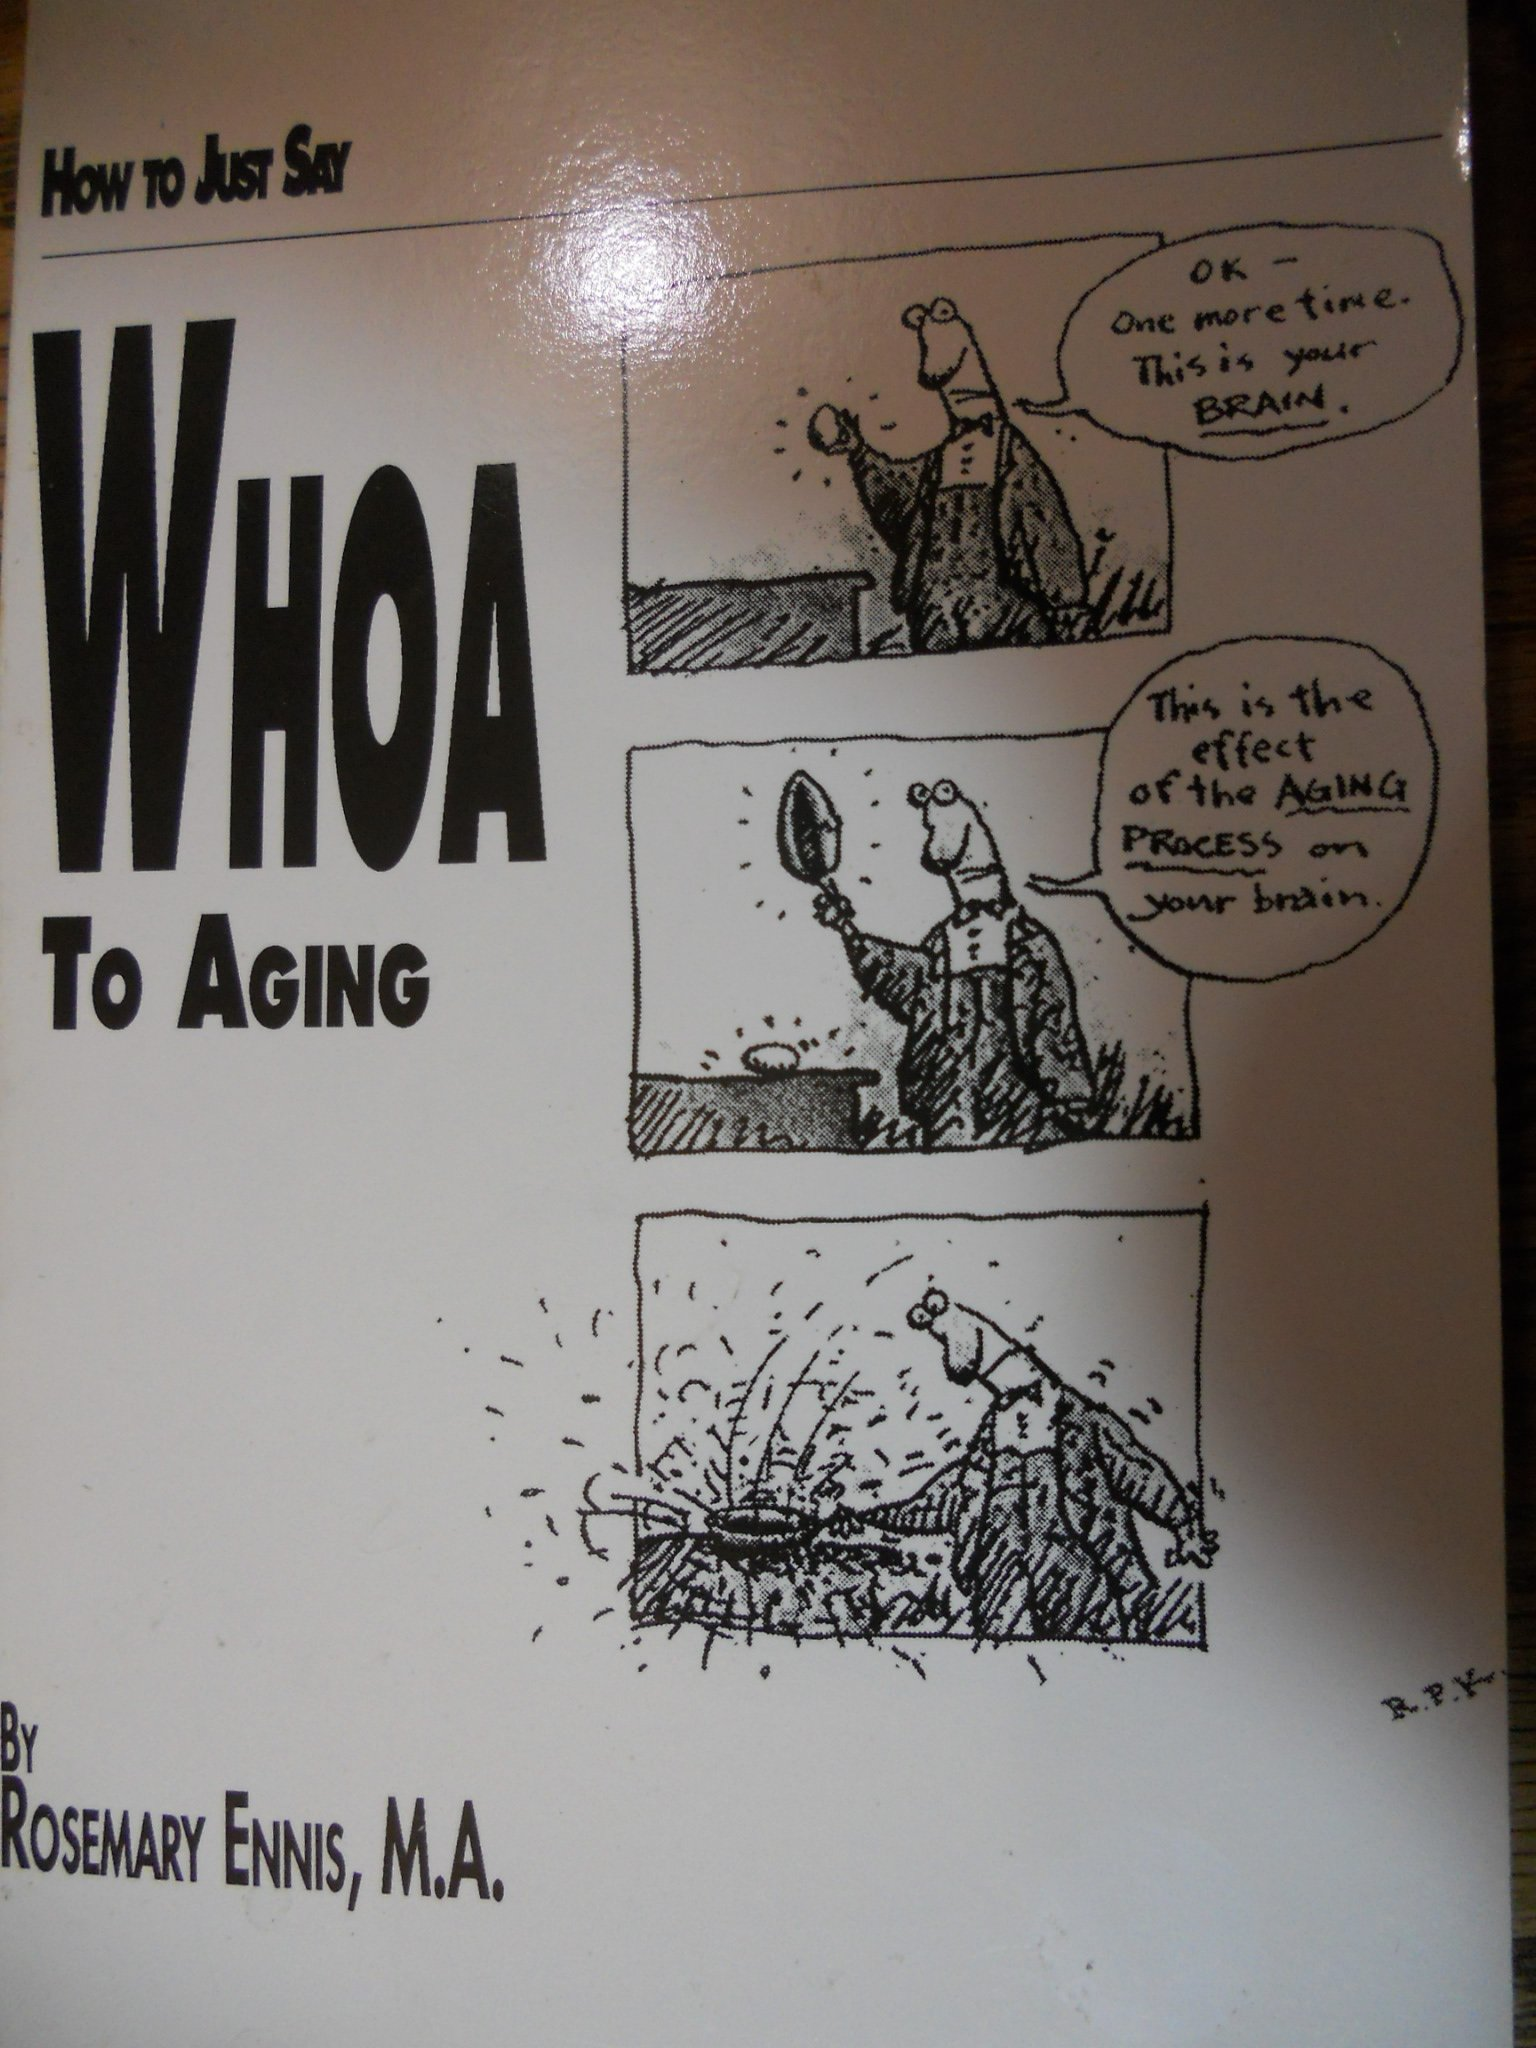 How to just say whoa to aging: Easy answers for slowing